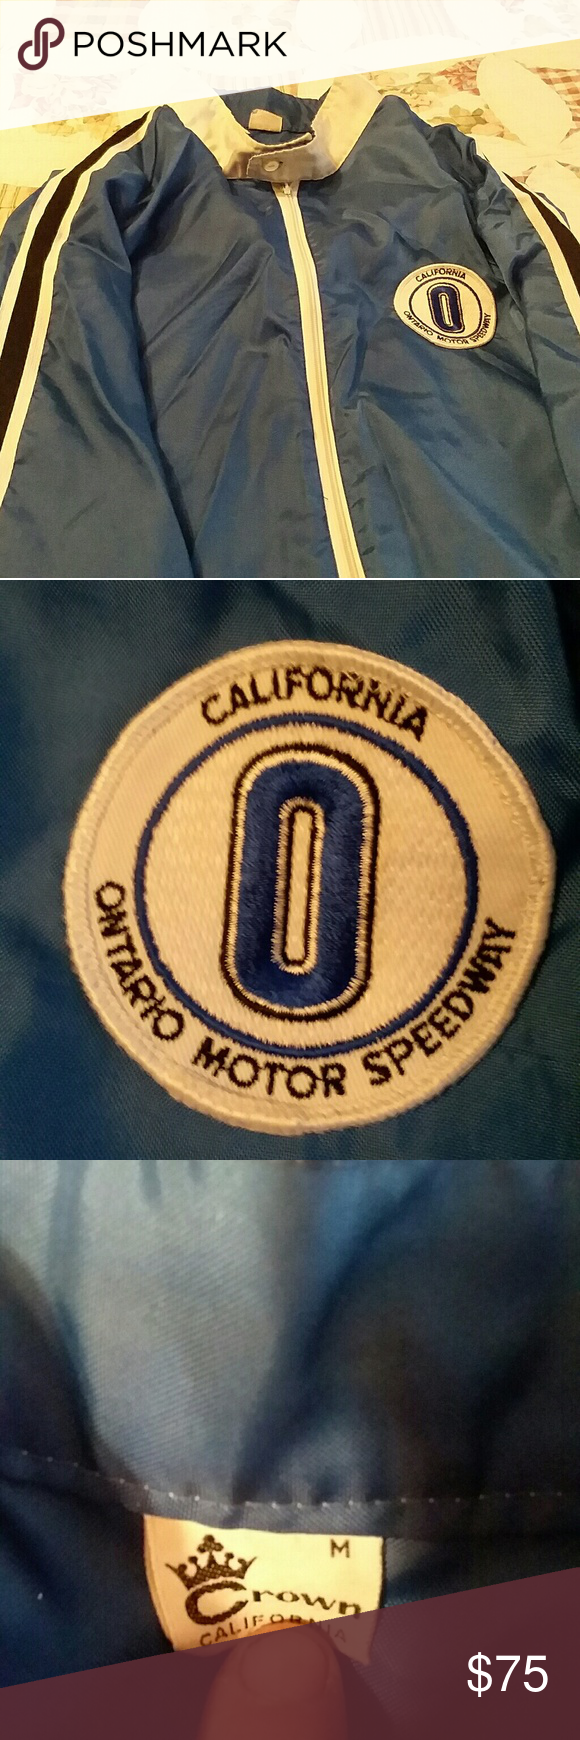 Ontario speedway wind breaker Vintage jacket, Clothes design